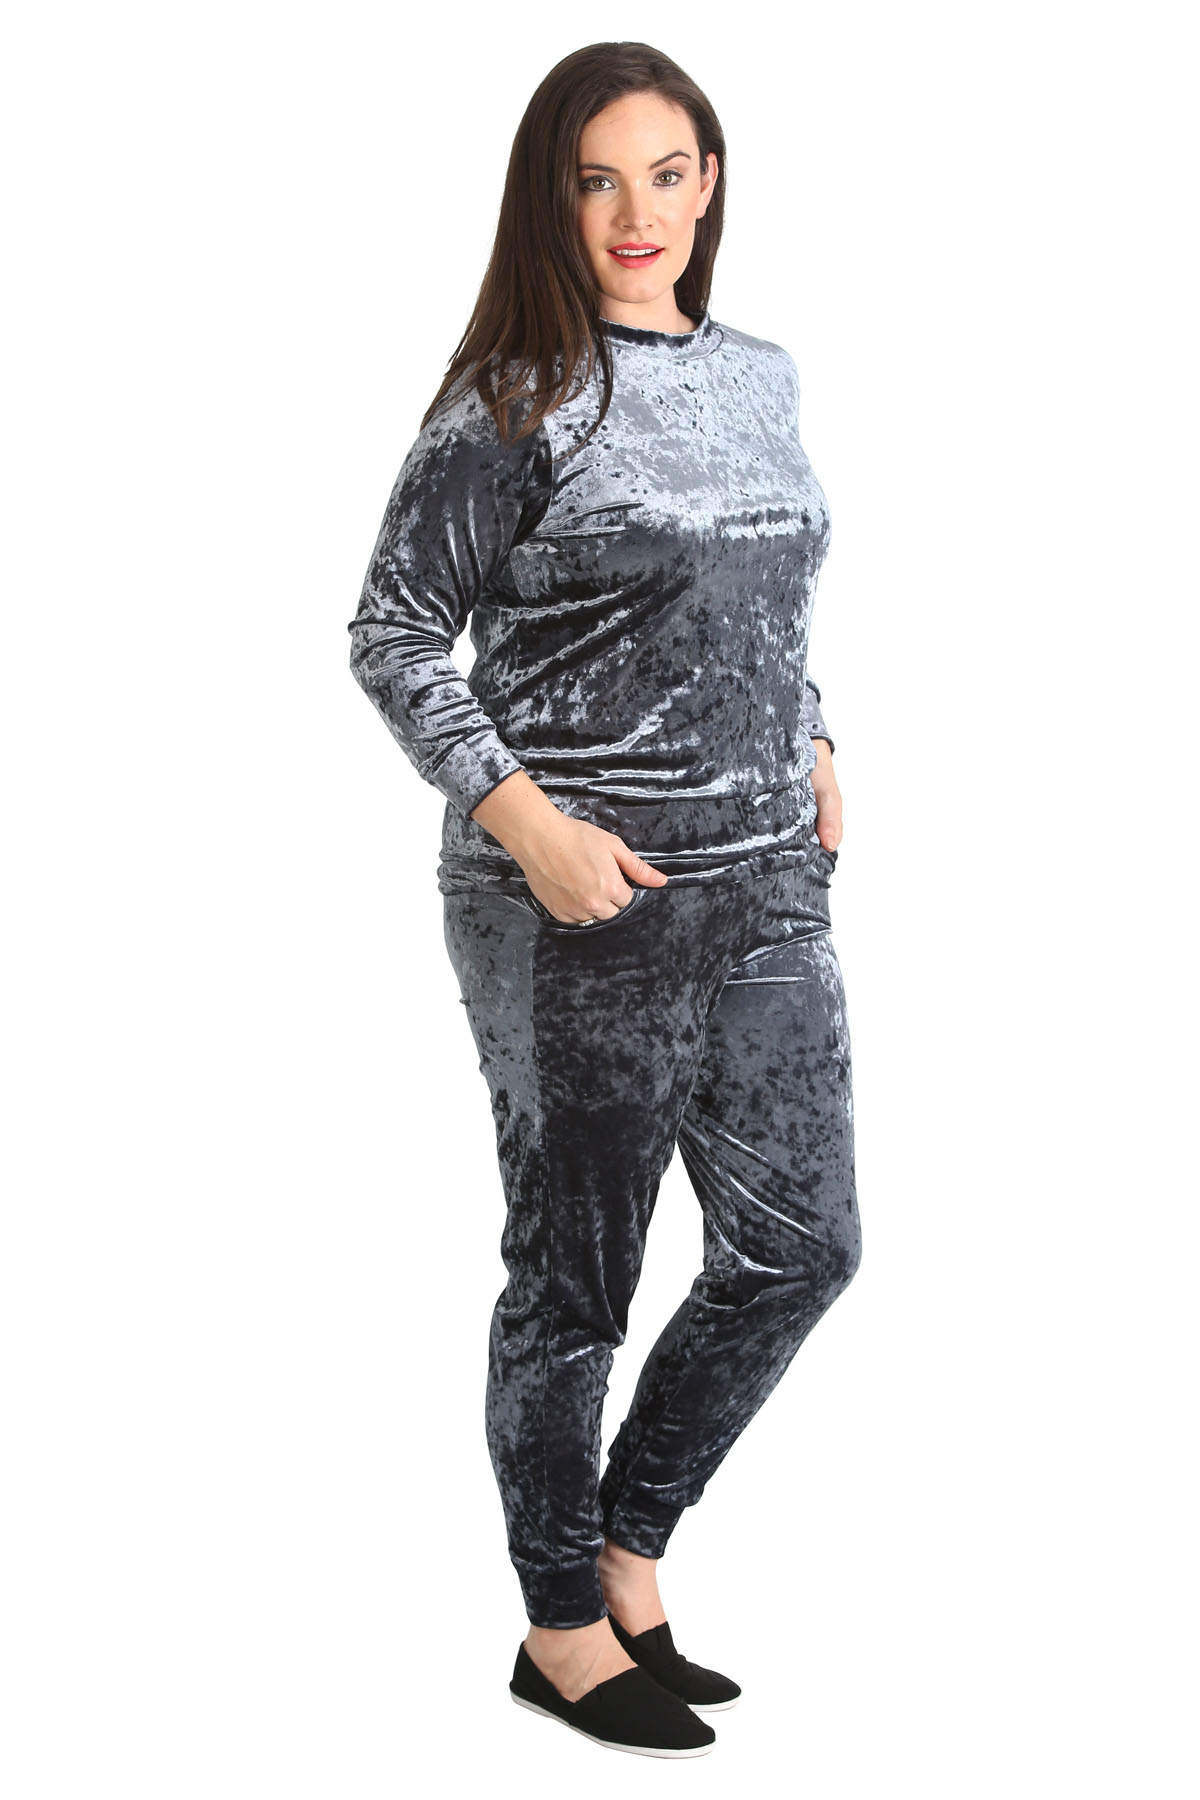 new womens tracksuit plus size ladies velvet top & bottoms cuffed